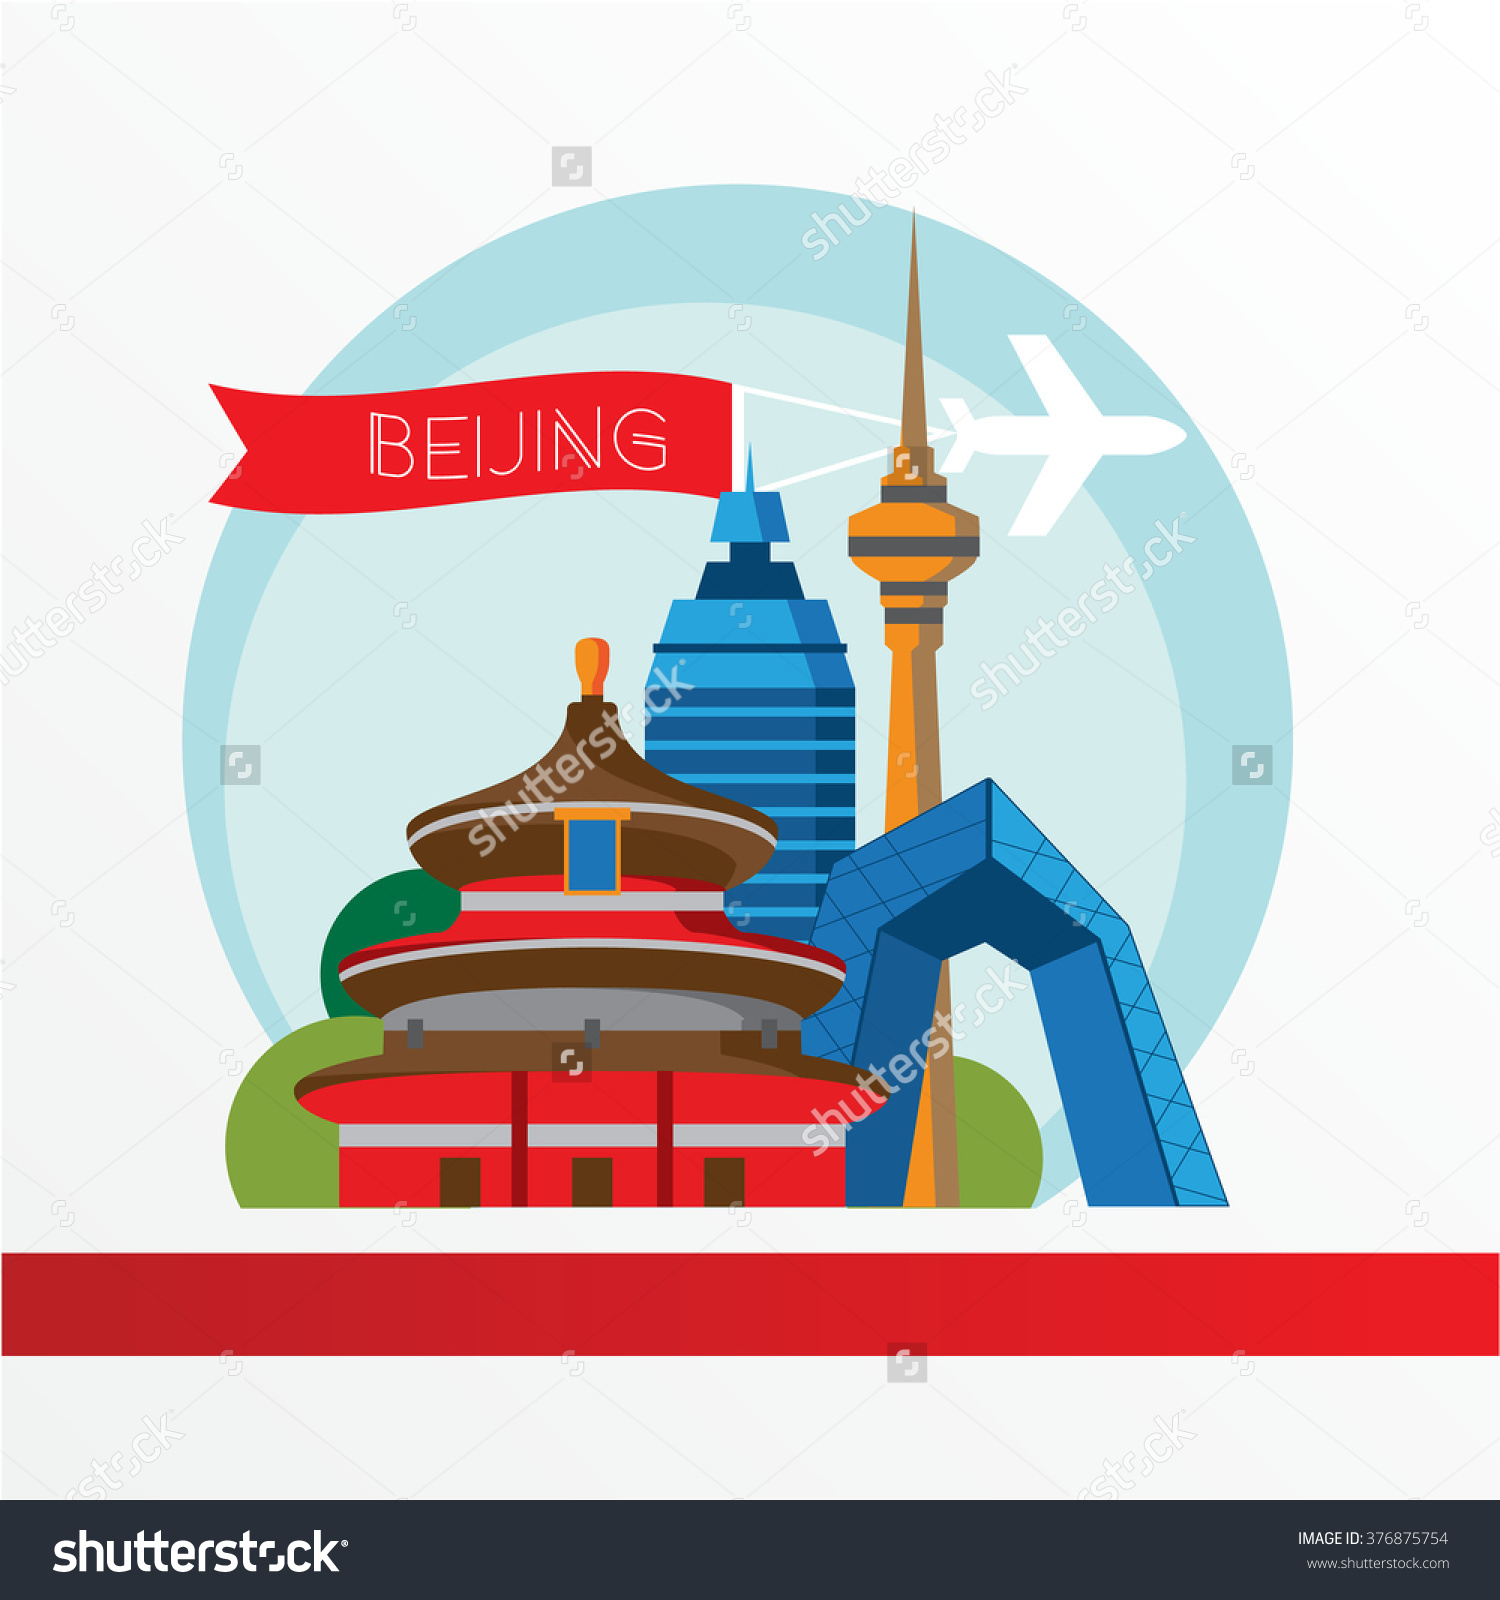 Beijing Detailed Silhouette Trendy Vector Illustration Stock.